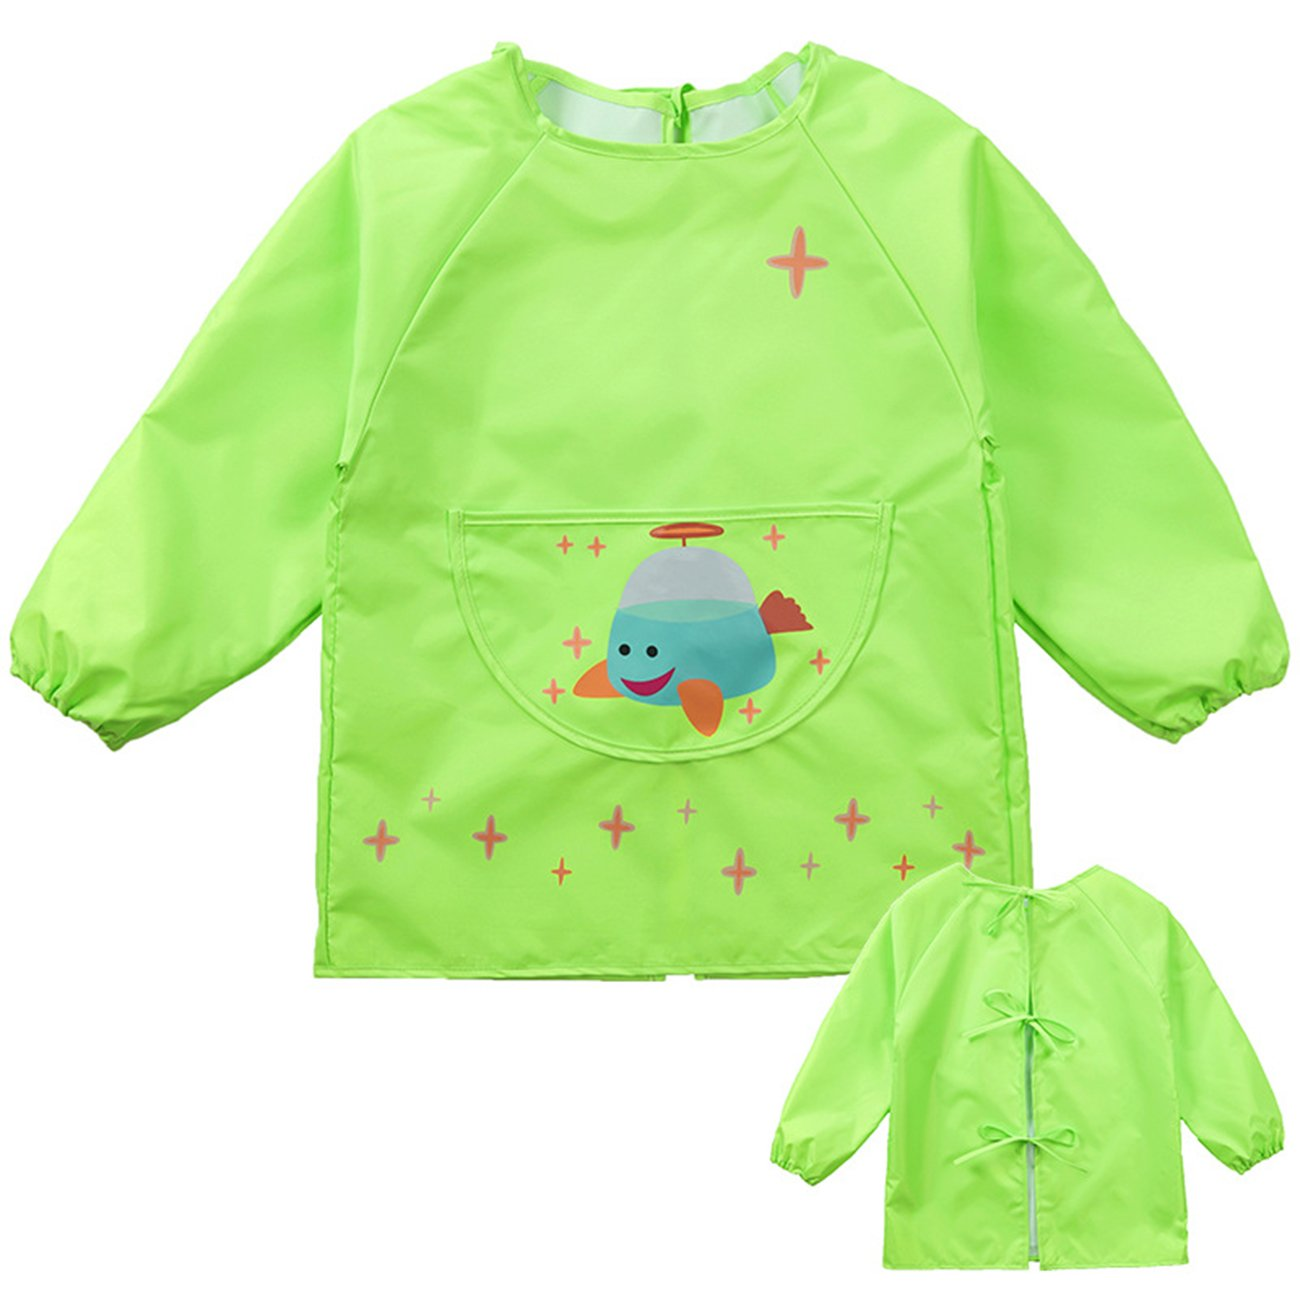 Lemonkid® Children's Waterproof Painting Clothing Fashion Cartoon Kids Protective Smock,Green1,S/Height:85-100cm/fit 2-4T